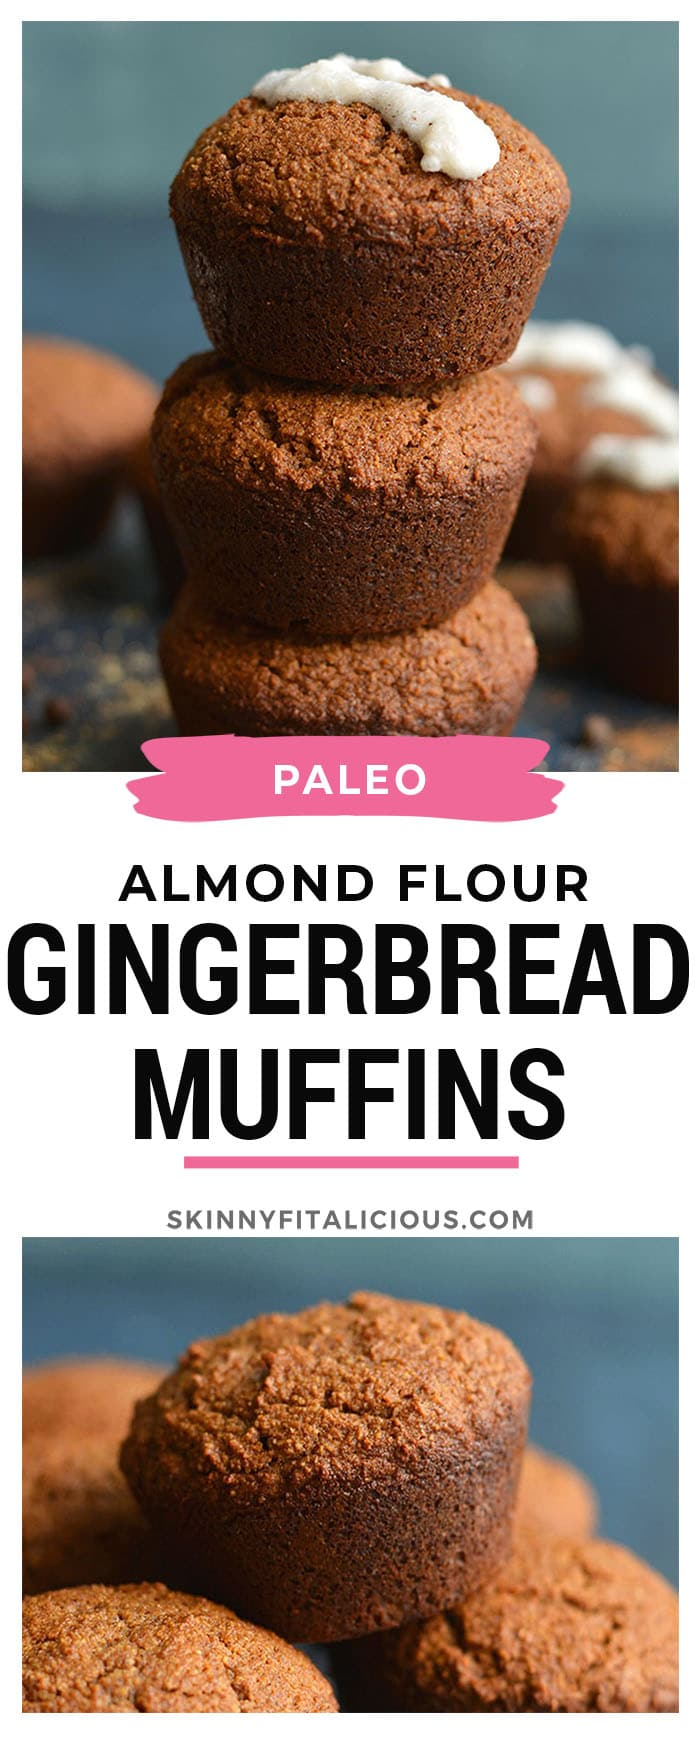 Almond Flour Gingerbread Muffins with collagen frosting. Spiced with warm flavors and high in protein and healthy fats! An easy breakfast or portable snack! Paleo + Gluten Free + Low Calorie